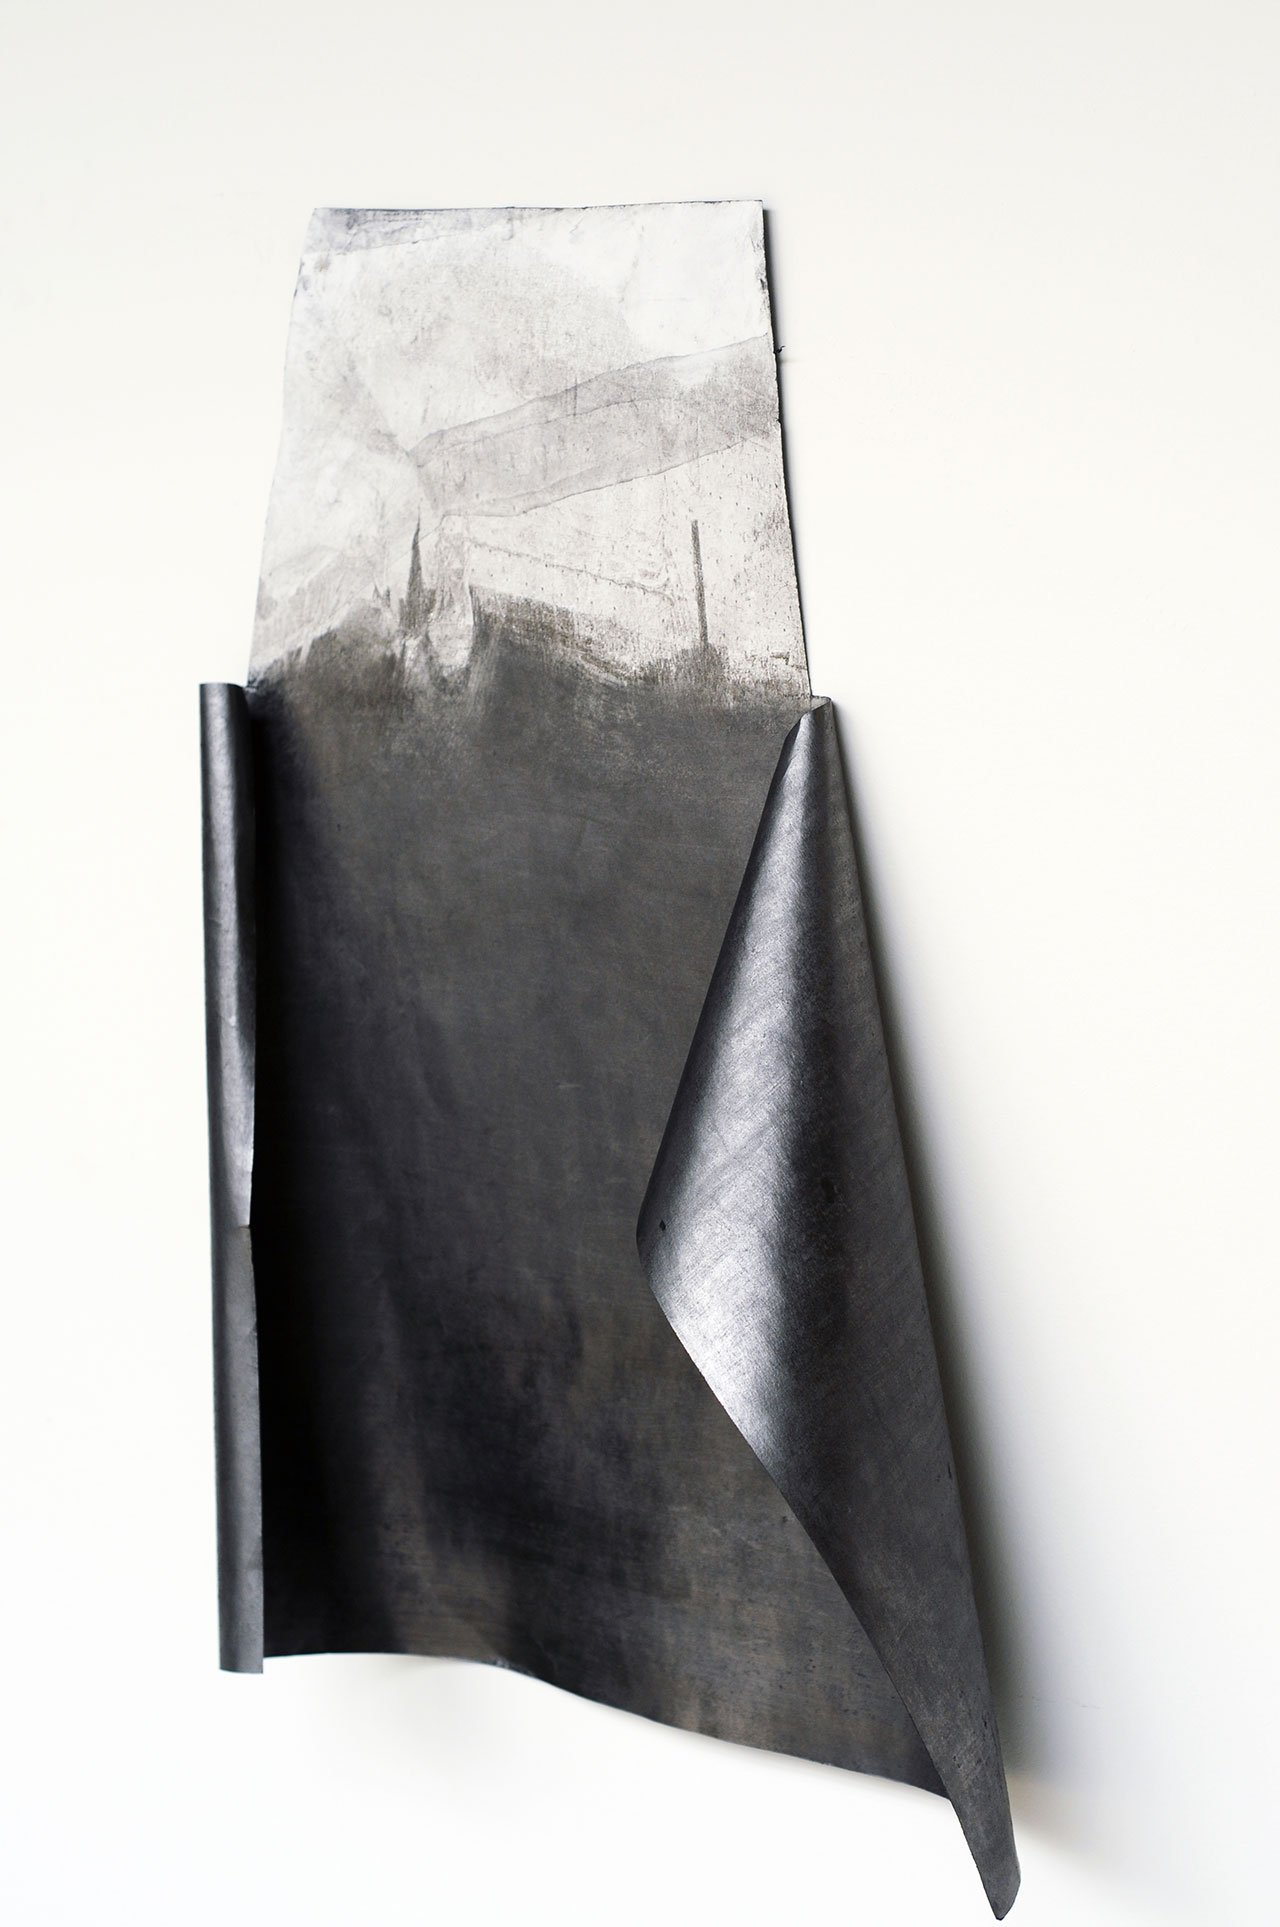 Despina Flessa, Folding landscape, graphite print and graphite on paper, 49 x 32 cm, 2015. Photo by Costas Christou.